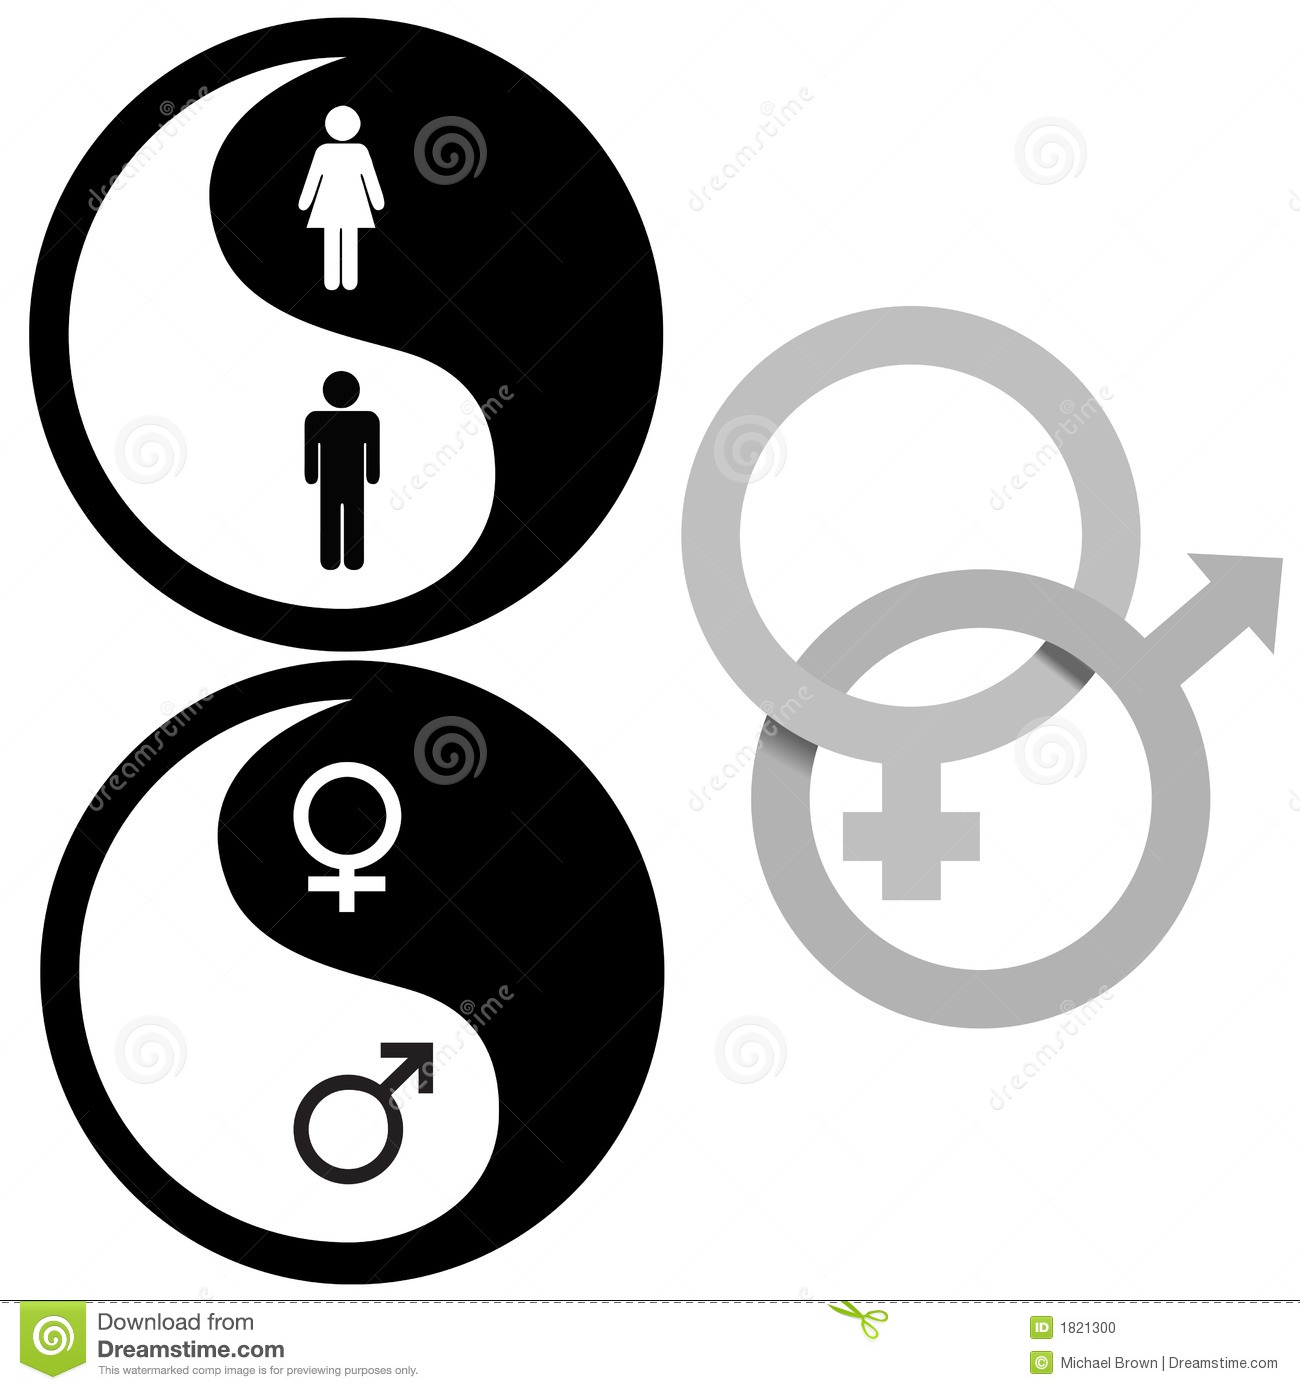 Yin yang male female symbols stock vector illustration of yin yang male female symbols biocorpaavc